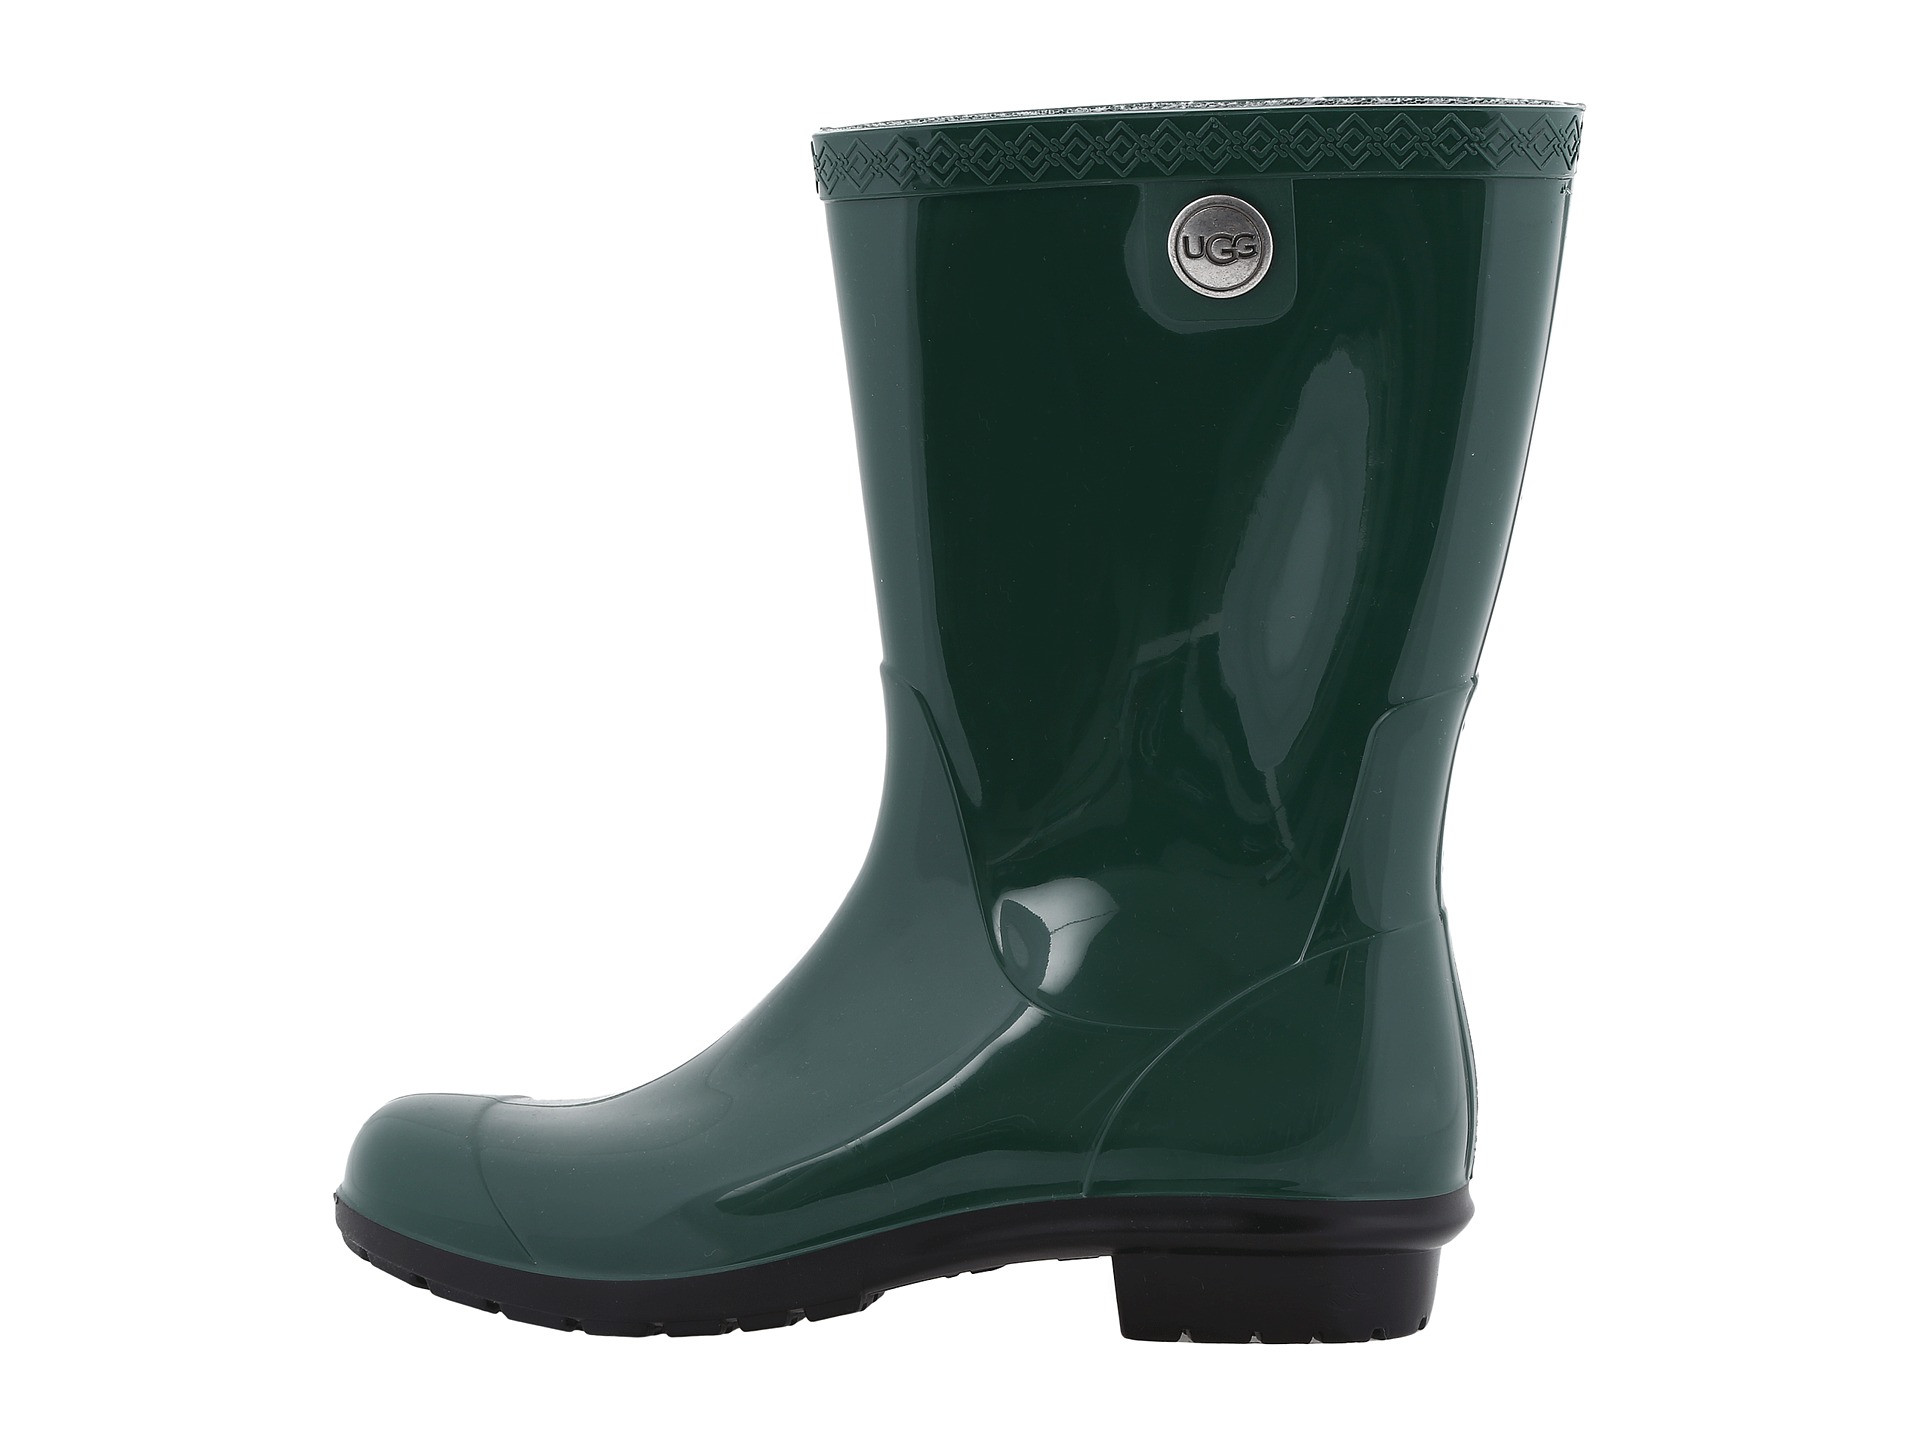 3acee8e9ea5 Details about UGG Women's Sienna Mid Calf Pull Up Rain Boot Pine